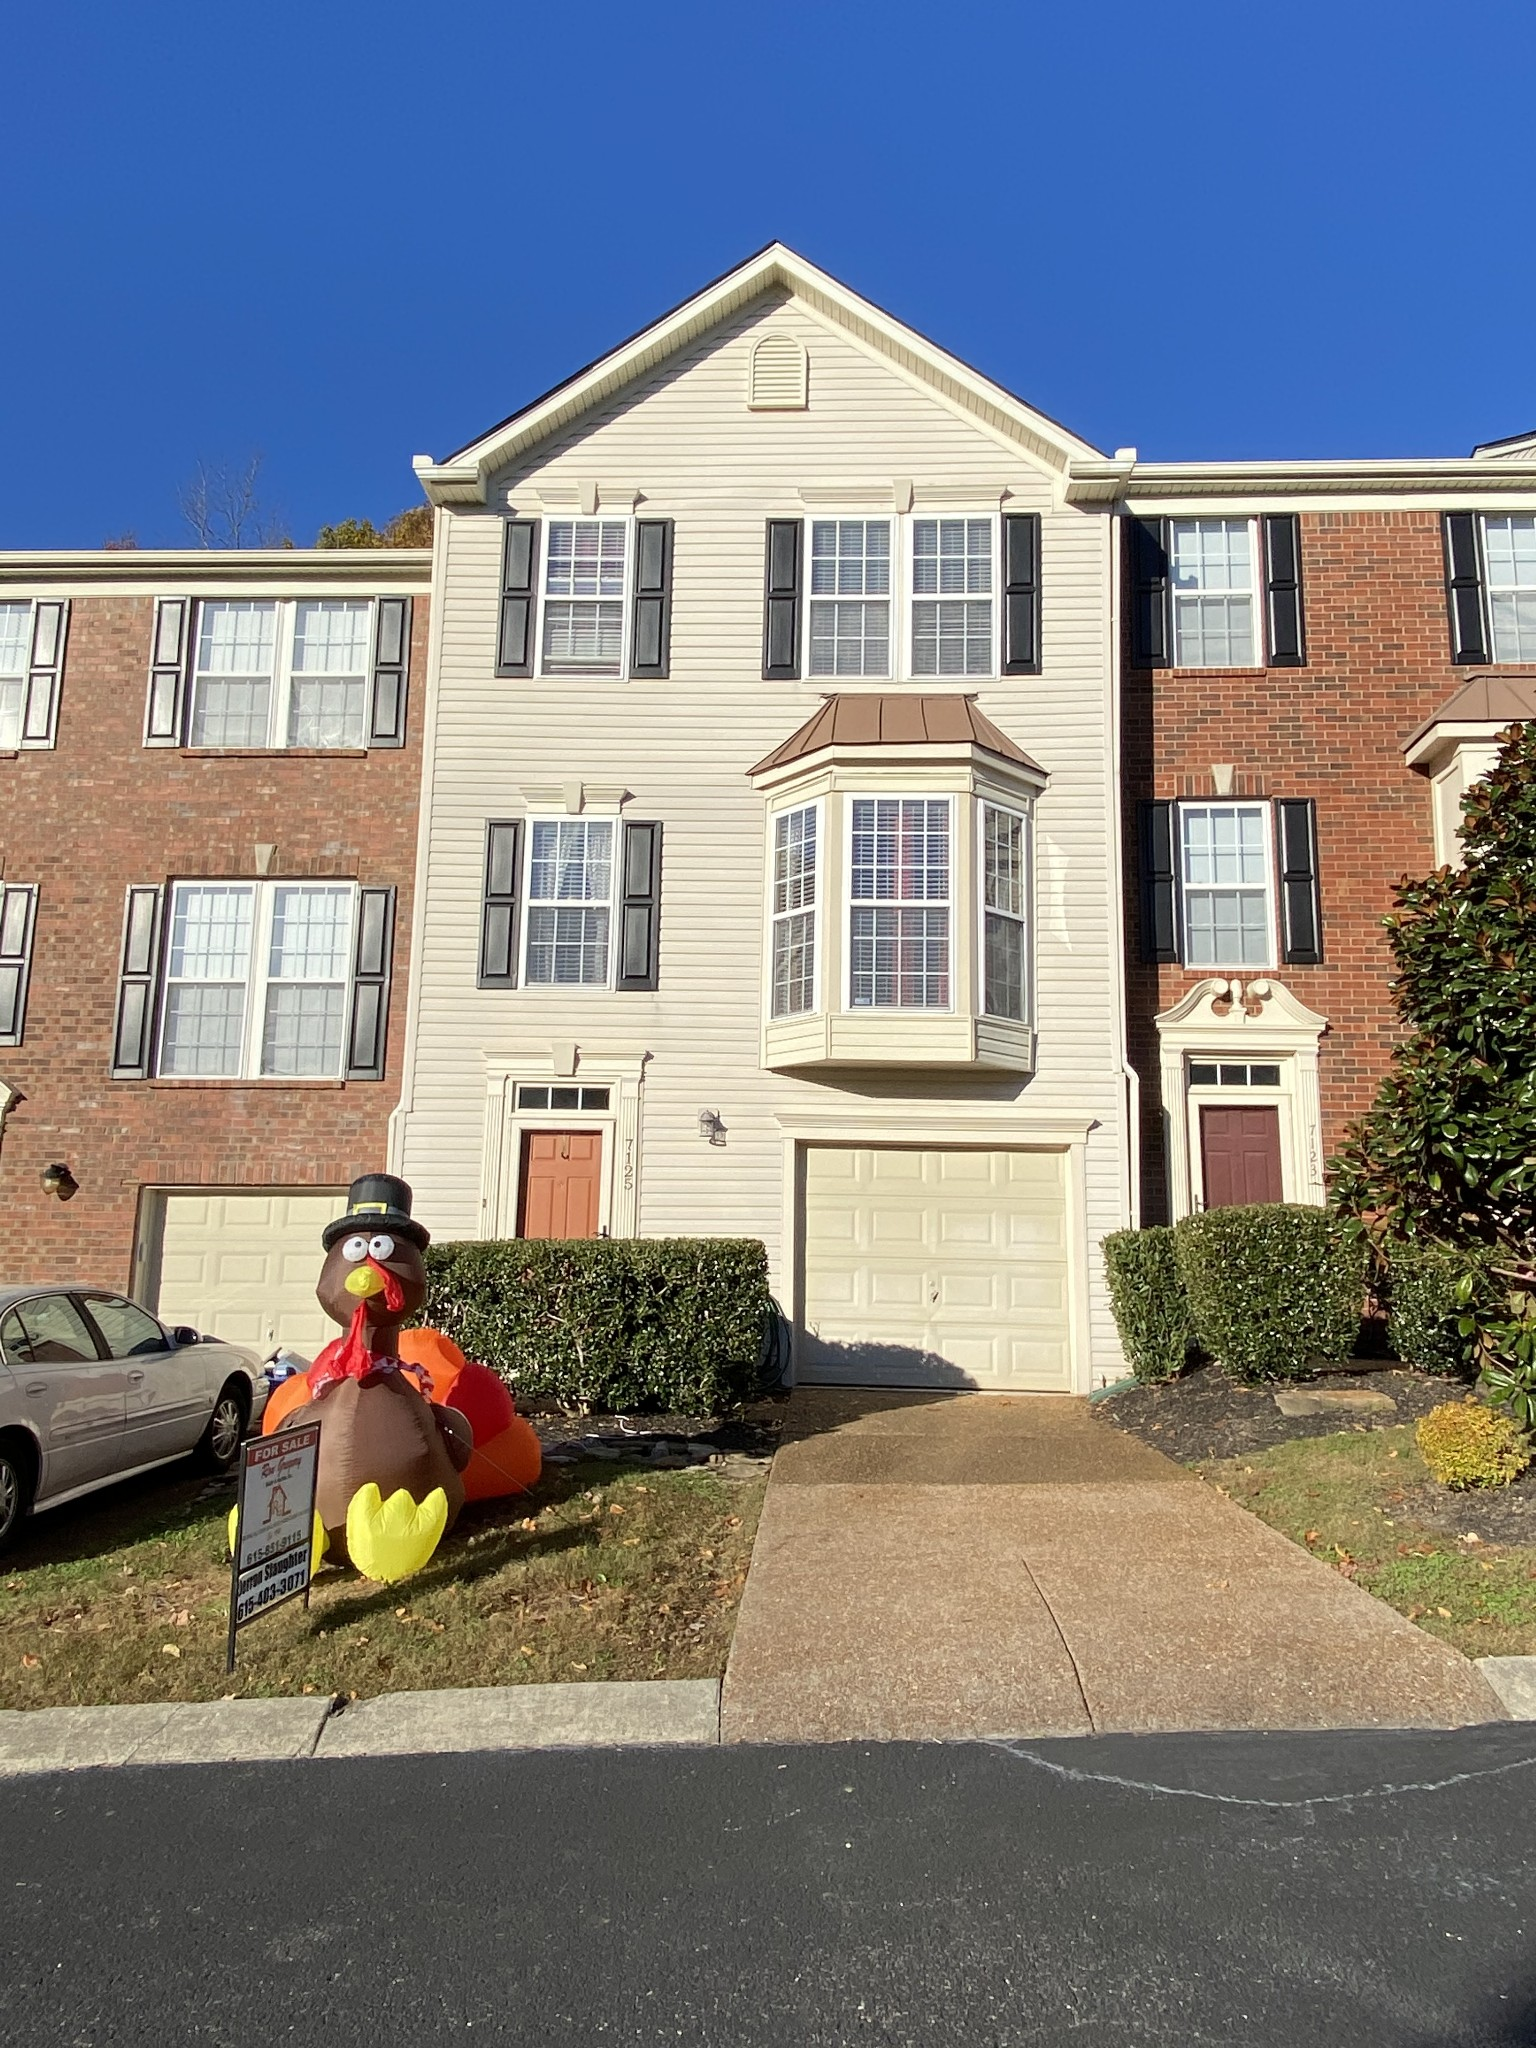 Beautiful 3 Bedroom 2 And Half Bath Completely Renovated Tri Level Condo In Nice Quiet Neighborhood.2000Sq With Attached Garage And Patio. Hardwood Floors Quartz Counter Tops, Stainless Steel Appliances In Kitchen With A Modern Backsplash. Living Room With Gas Fire Place, Bonus Room & Den. Community Swimming Pool .With In Walking Distance of Bowie Park.